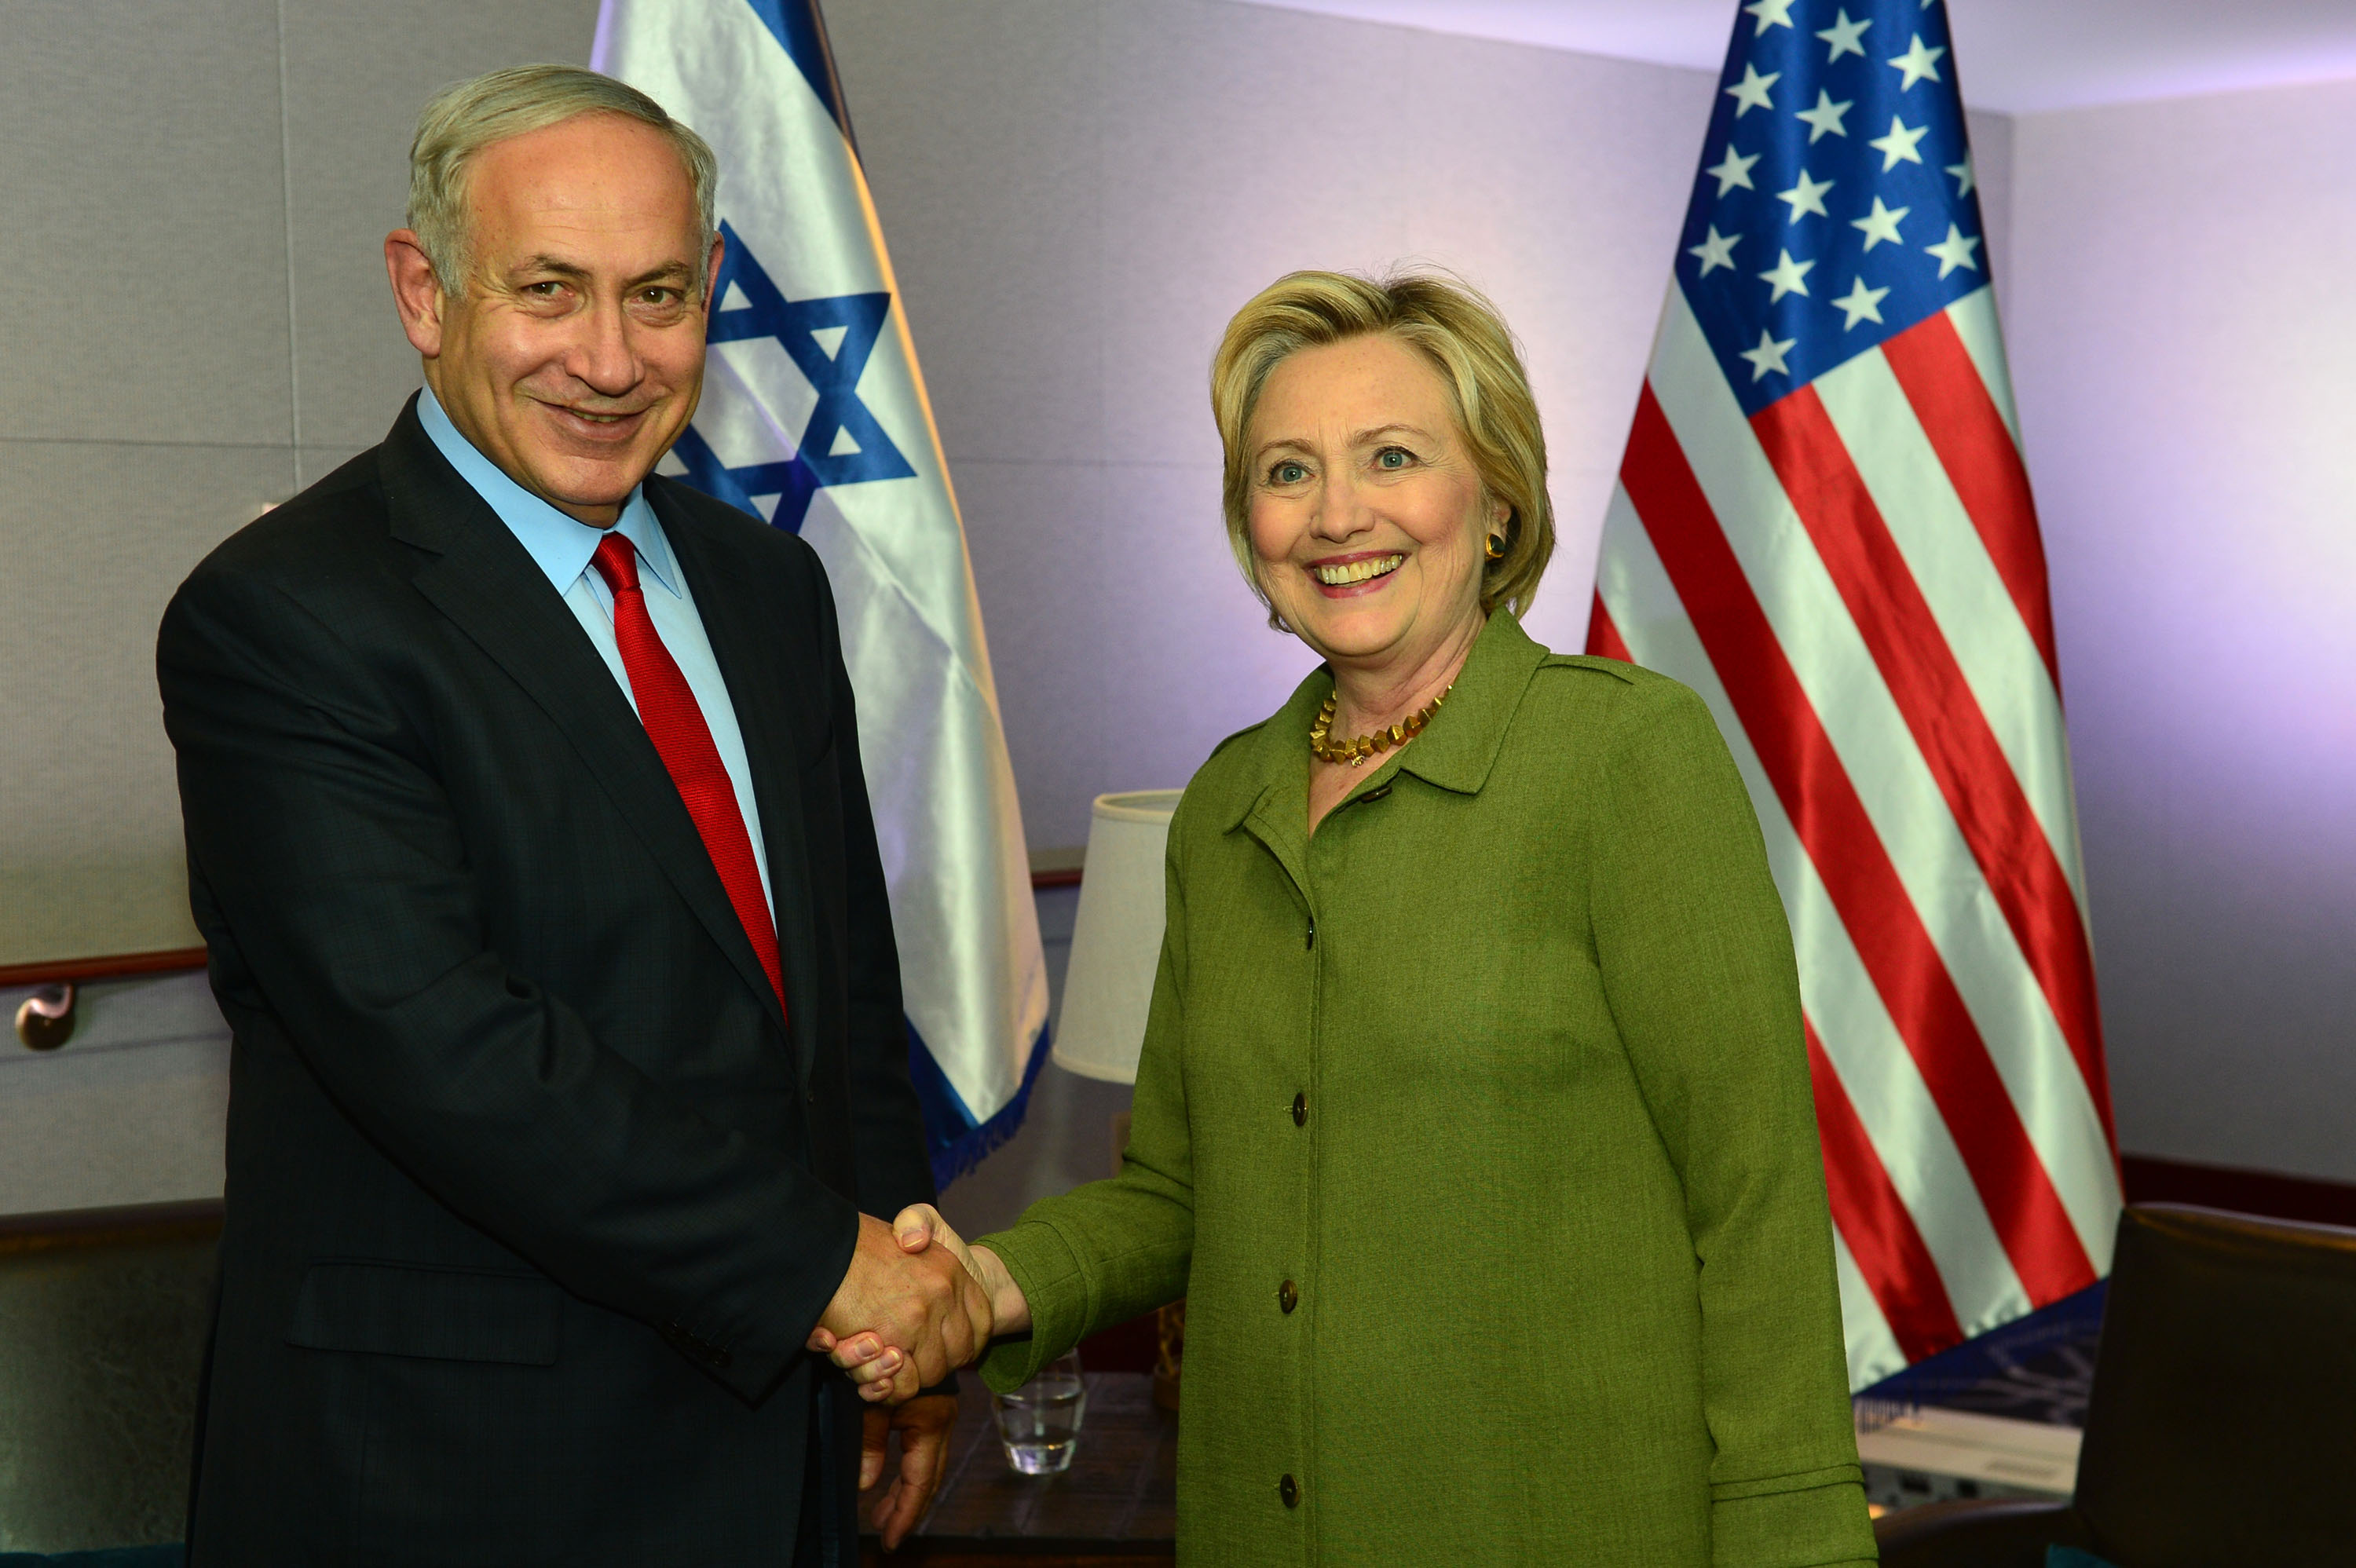 Israeli Prime Minister Netanyahu Meets With Hillary Clinton in New York